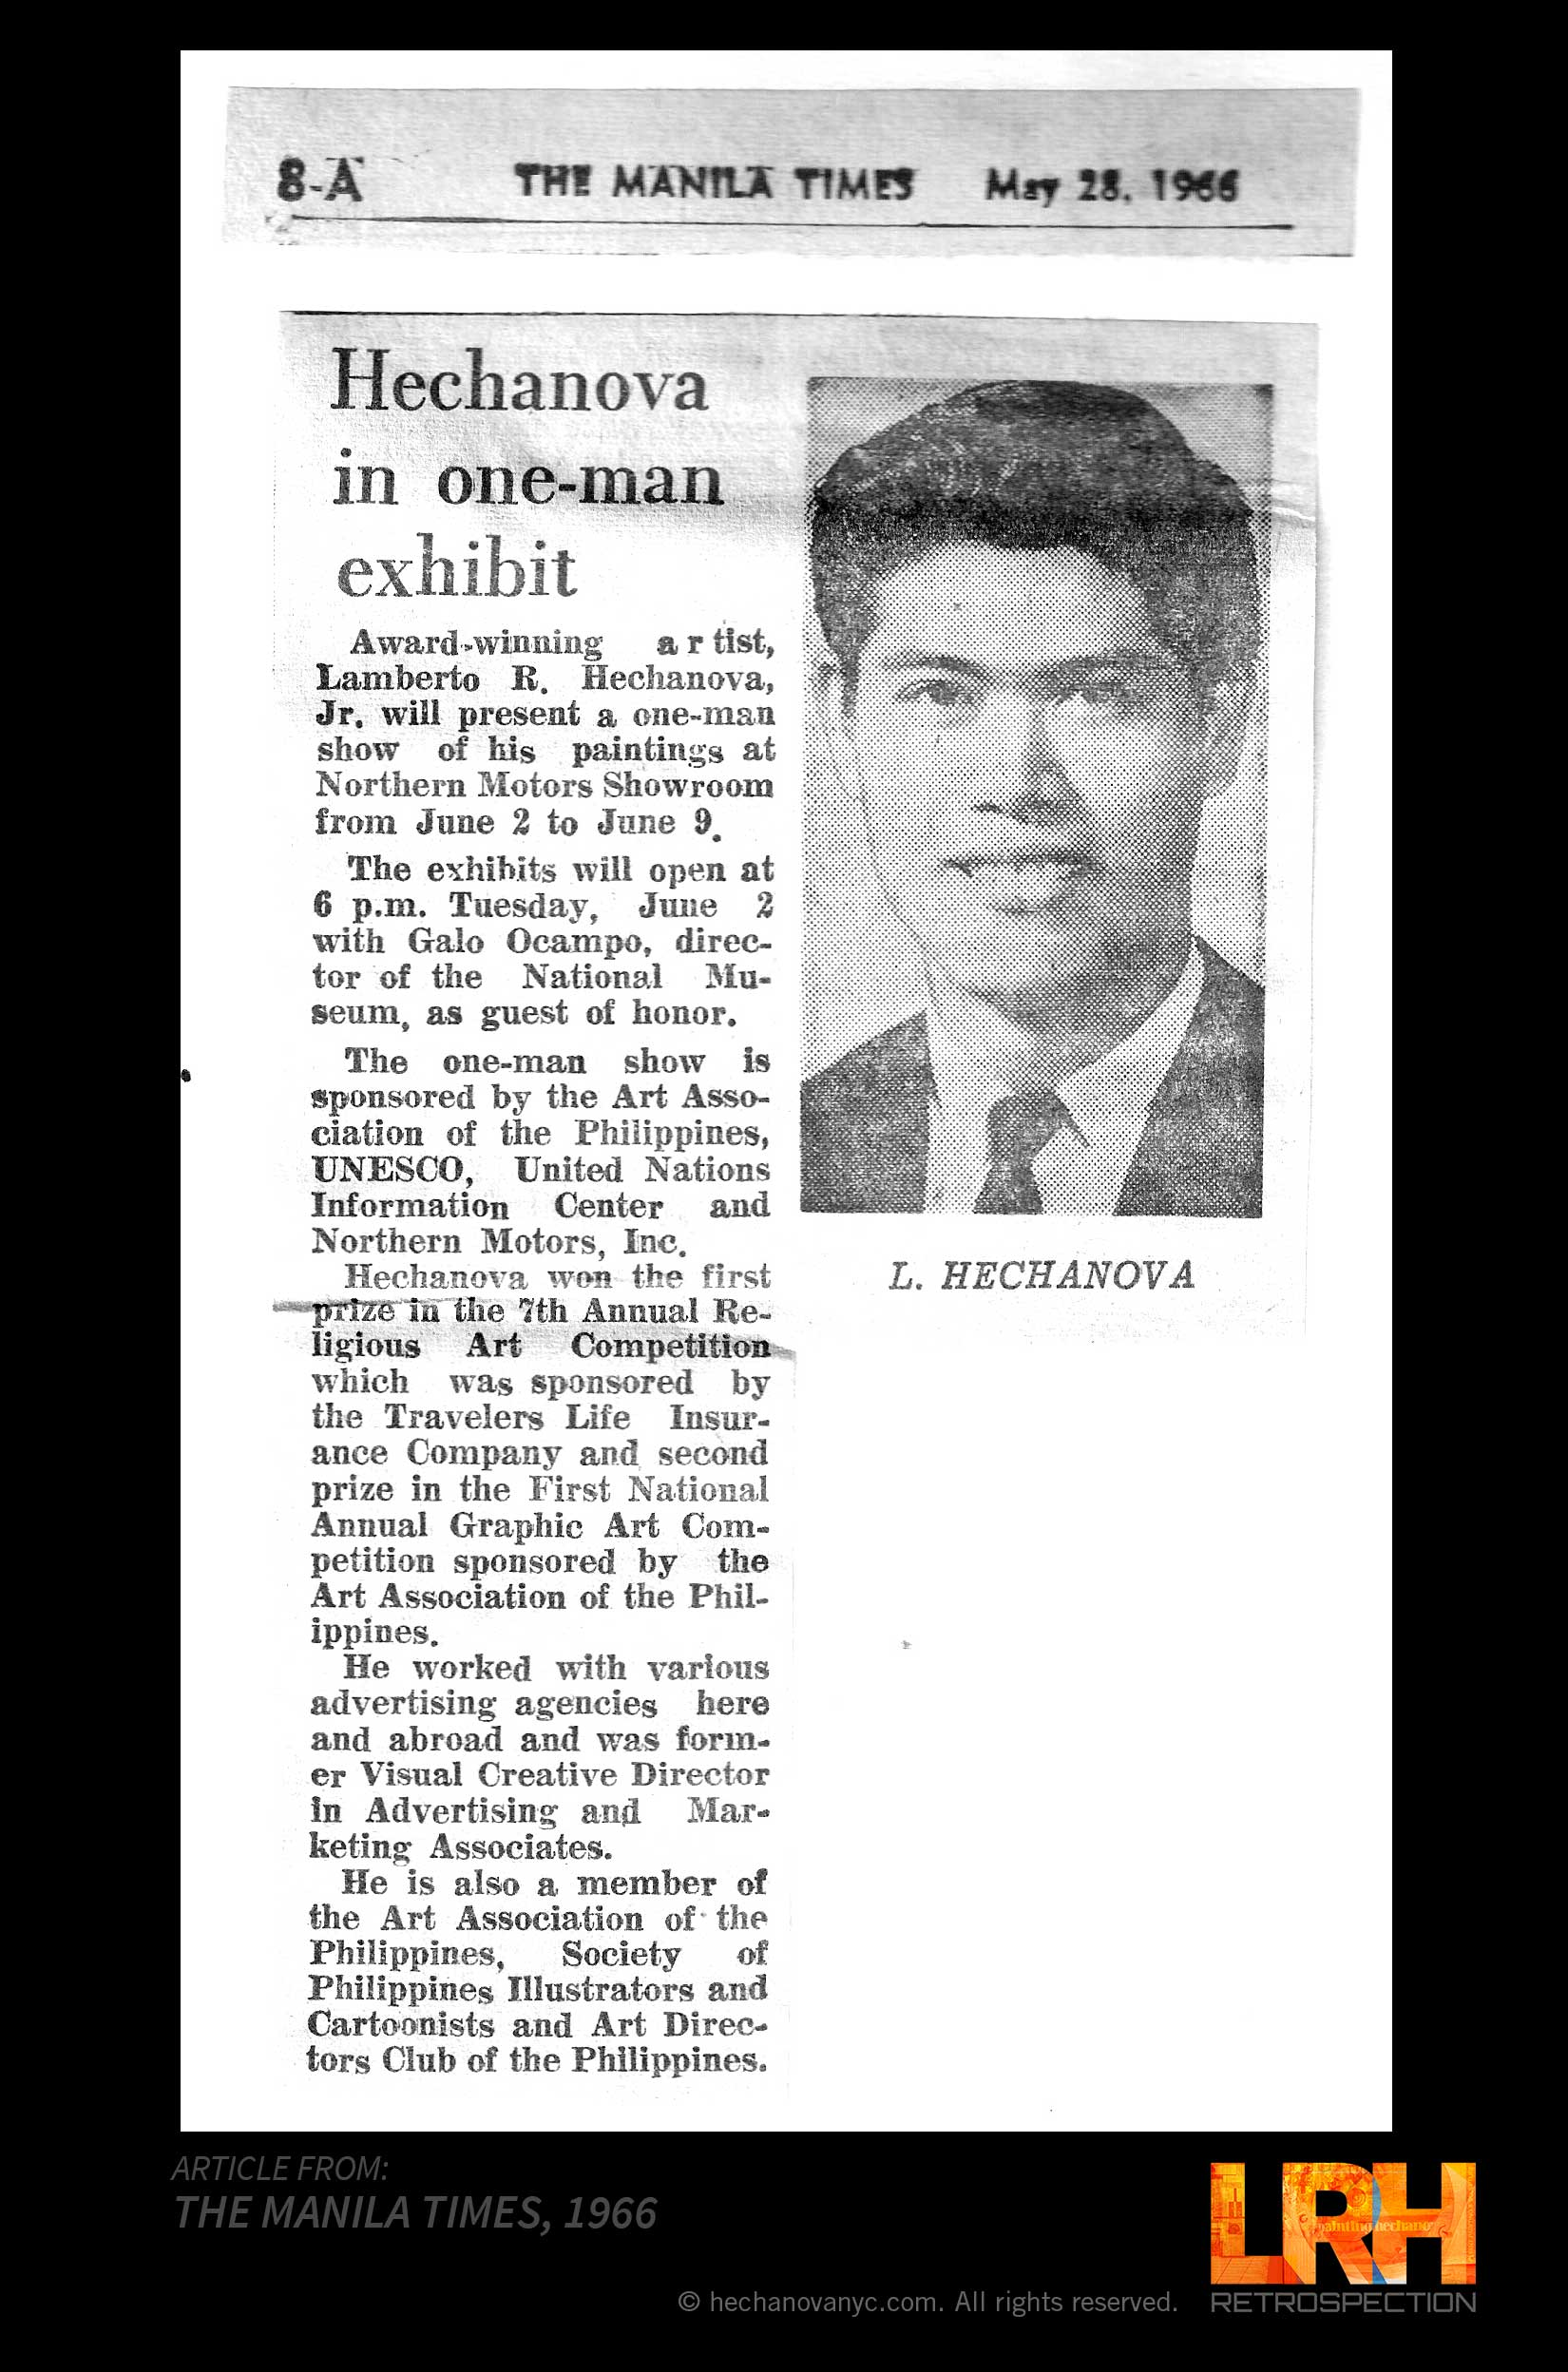 ARTICLE THE MANILA TIMES 1966